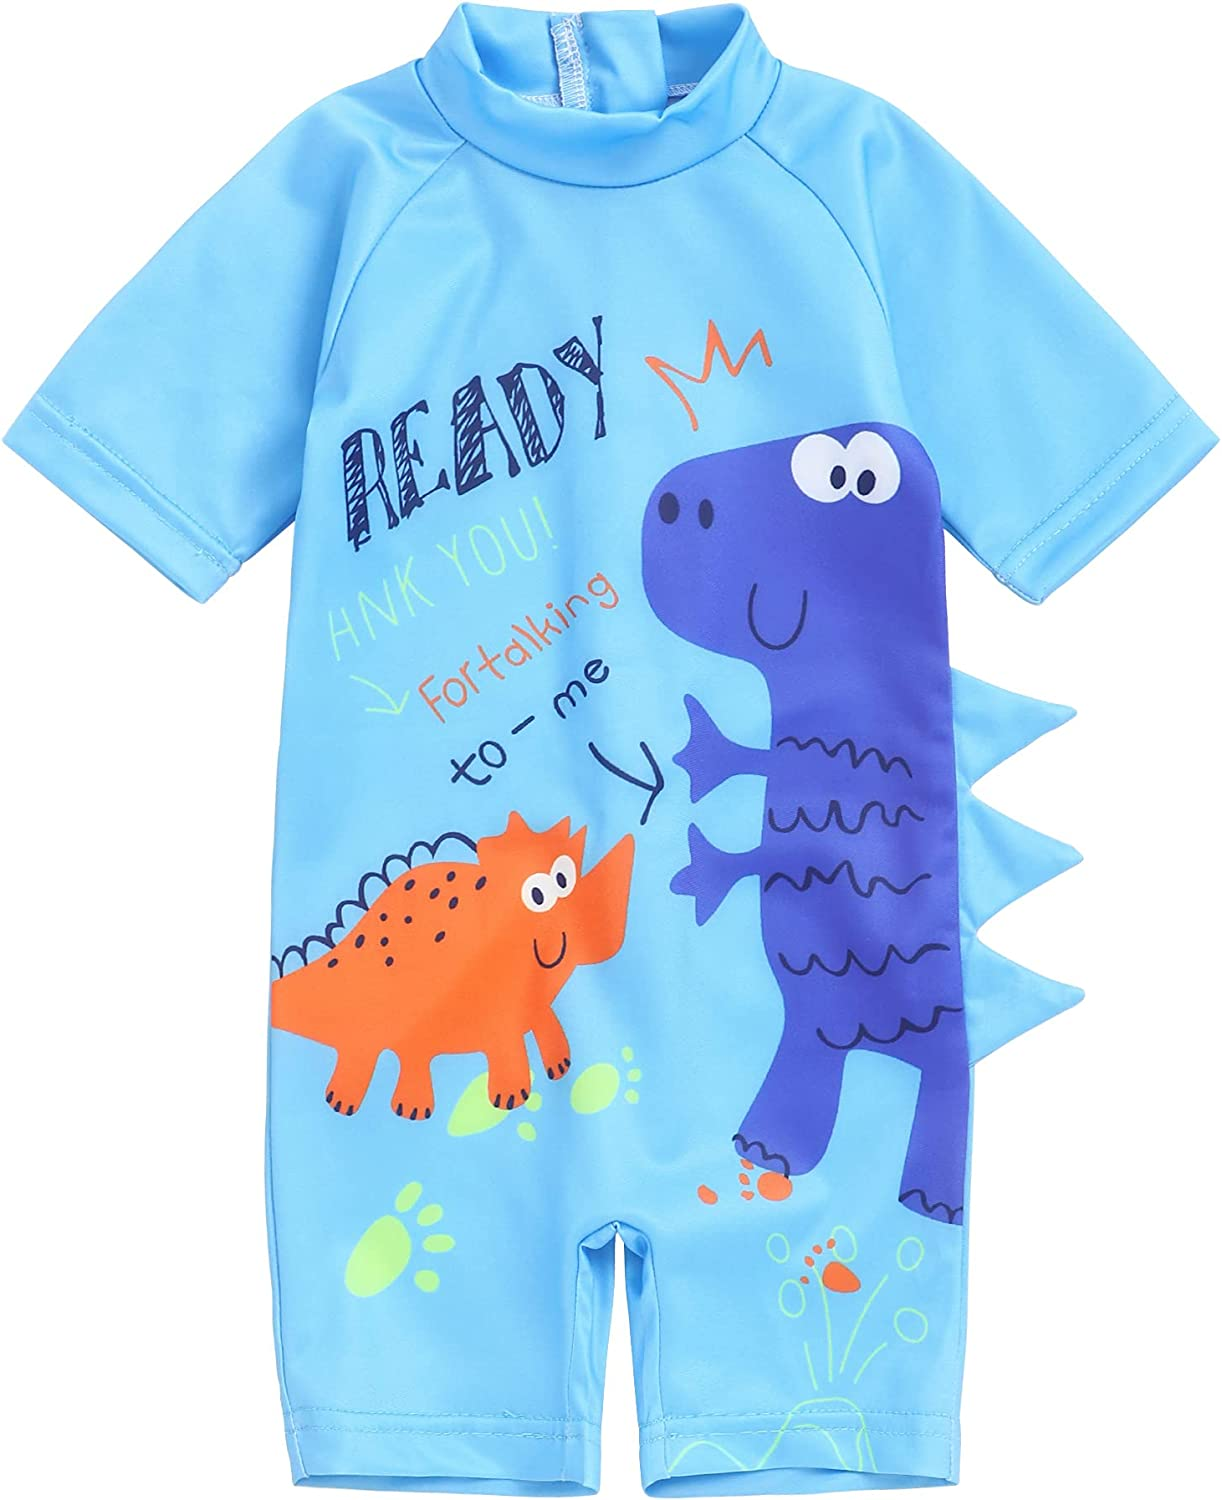 Baby Boy Swimsuit Price reduction Bathing Finally resale start Clot Toddler Summer Suits